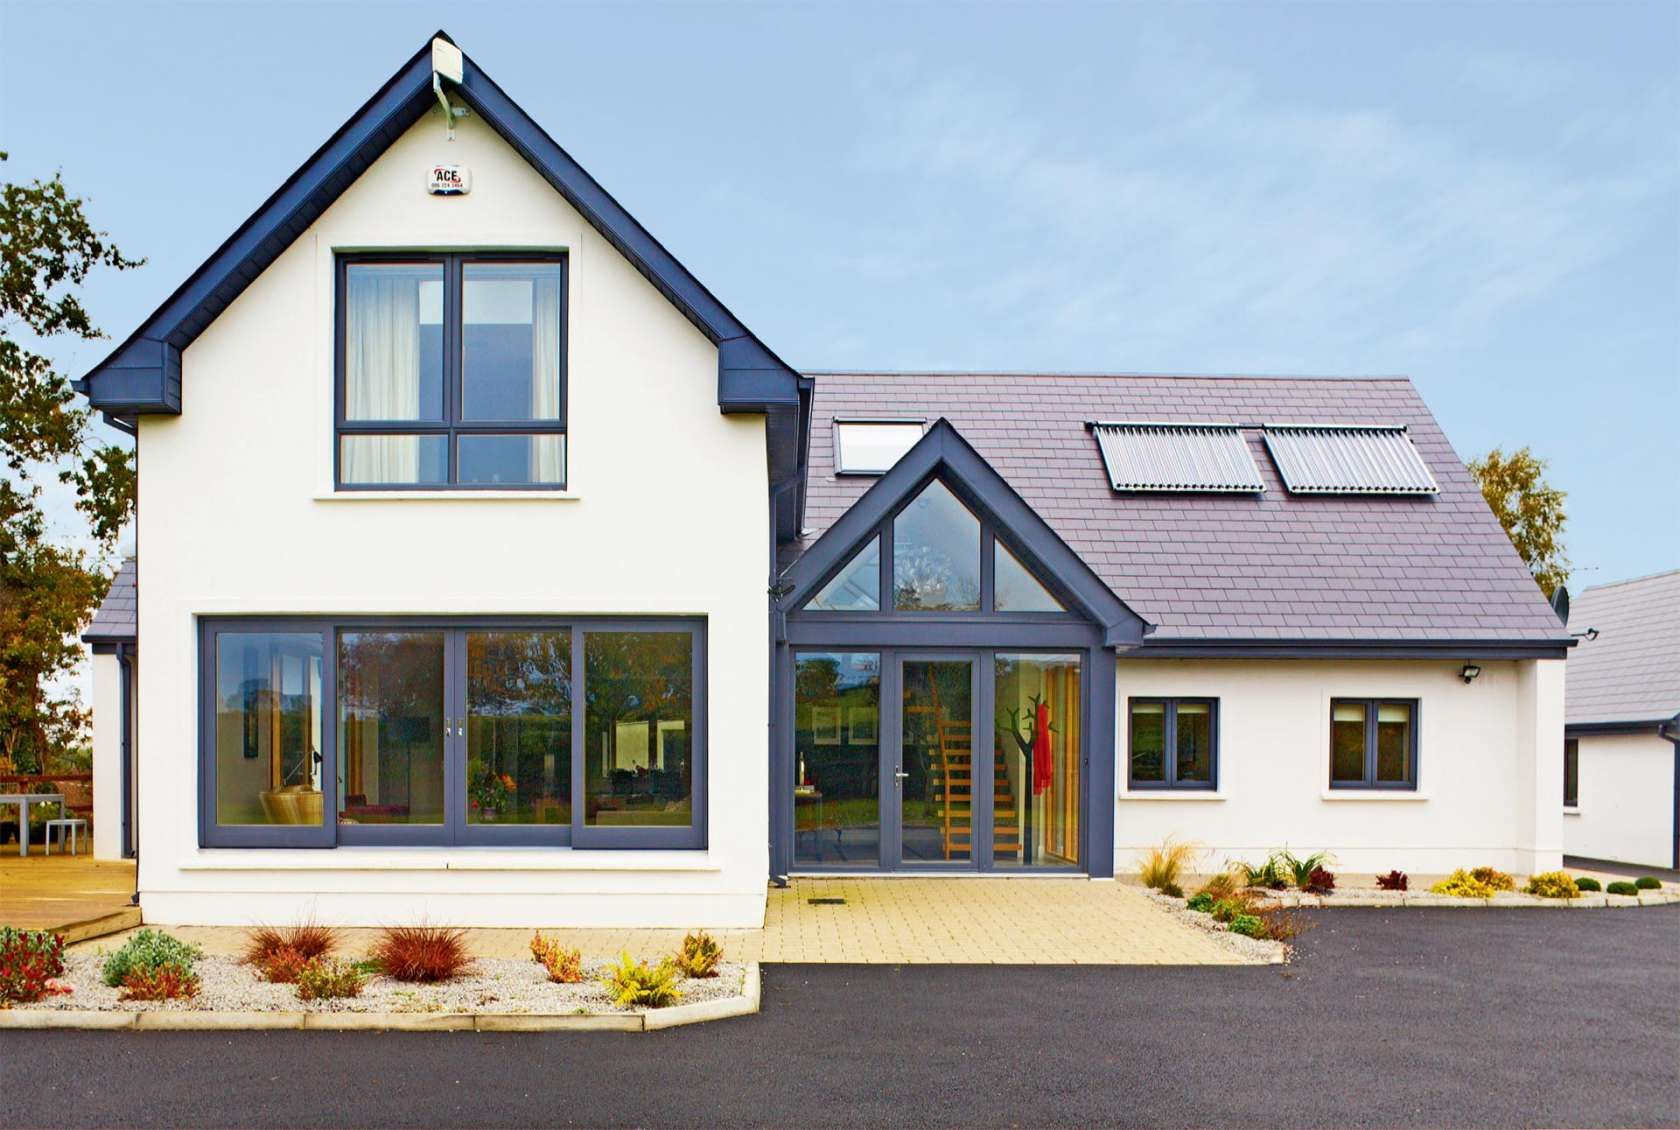 Transforming a dormer bungalow | Real Homes